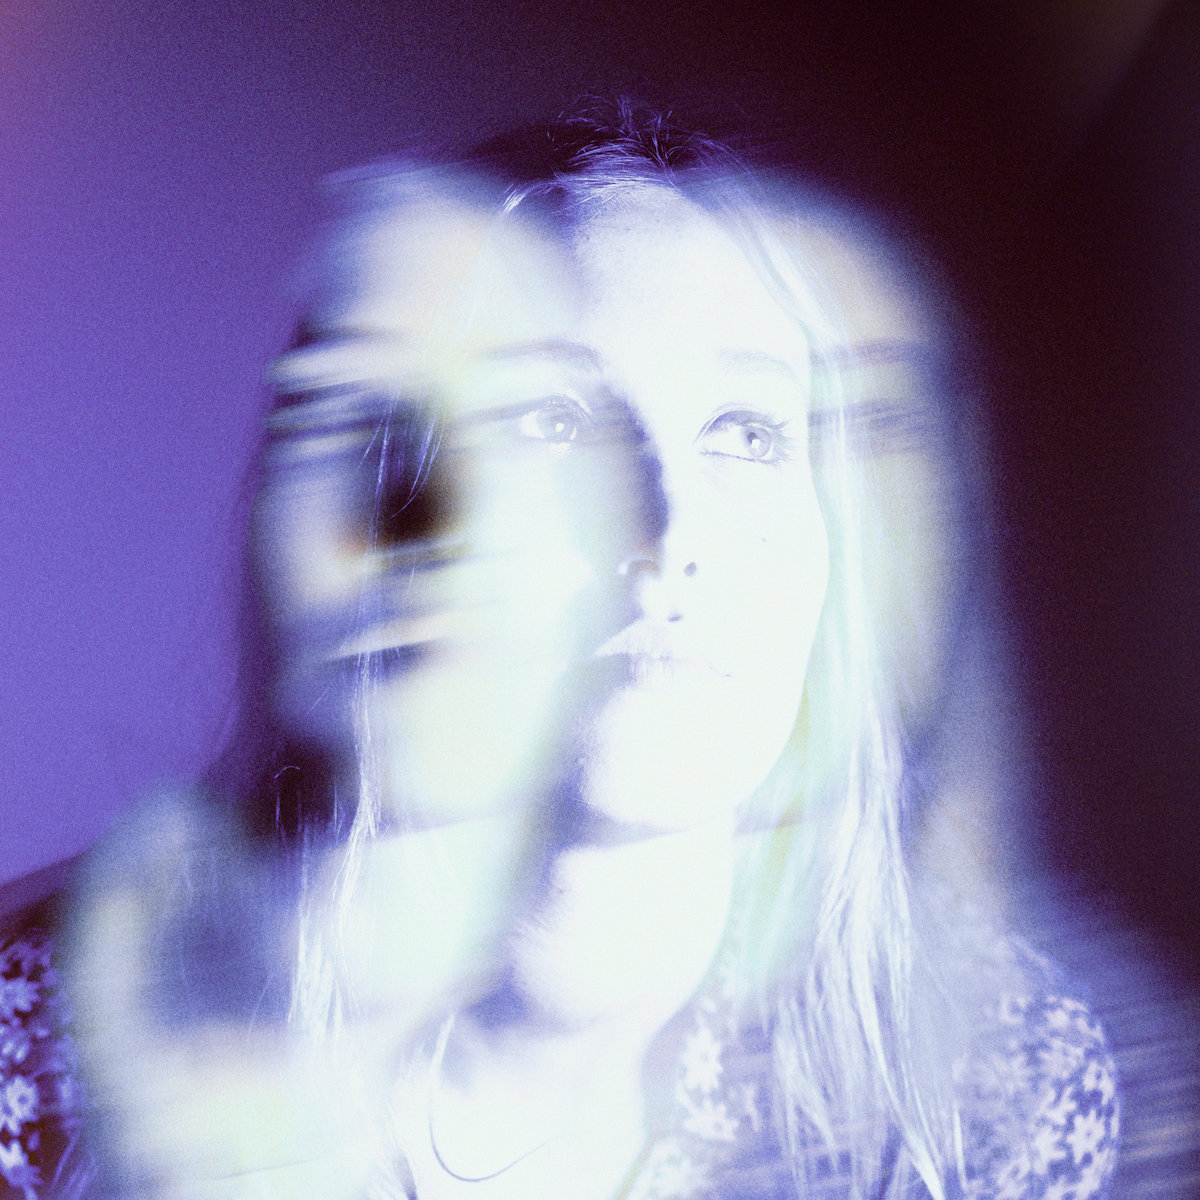 Hatchie - Without a Blush p,m,e,i